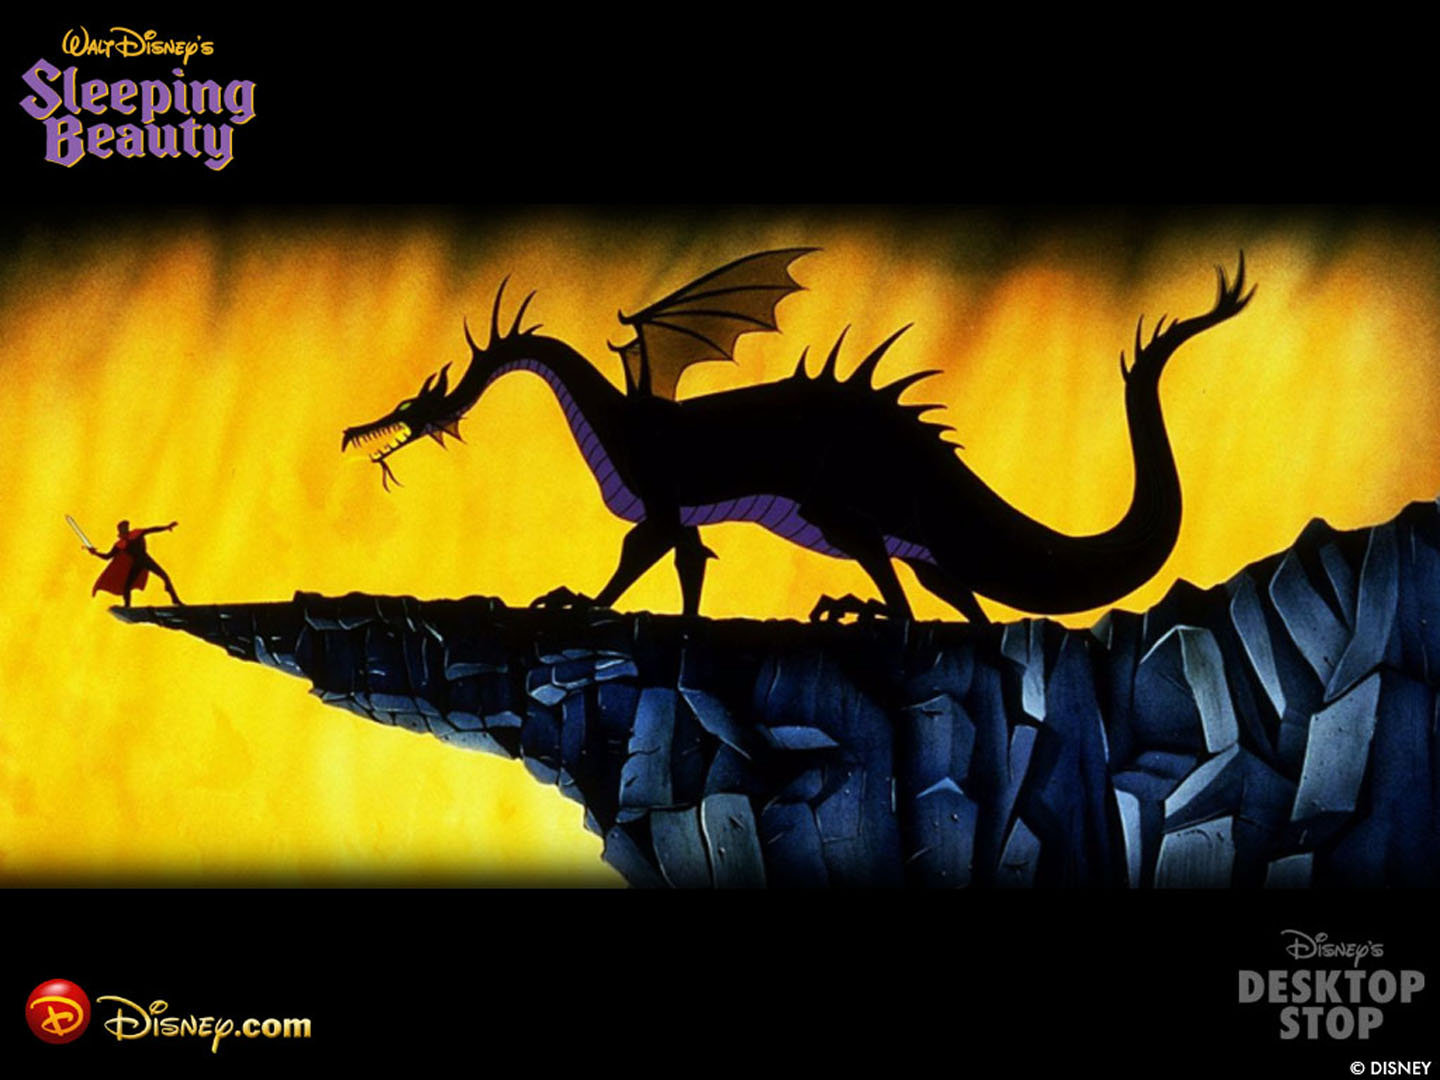 The Prince And The Dragon In Sleeping Beauty Disney Wallpaper